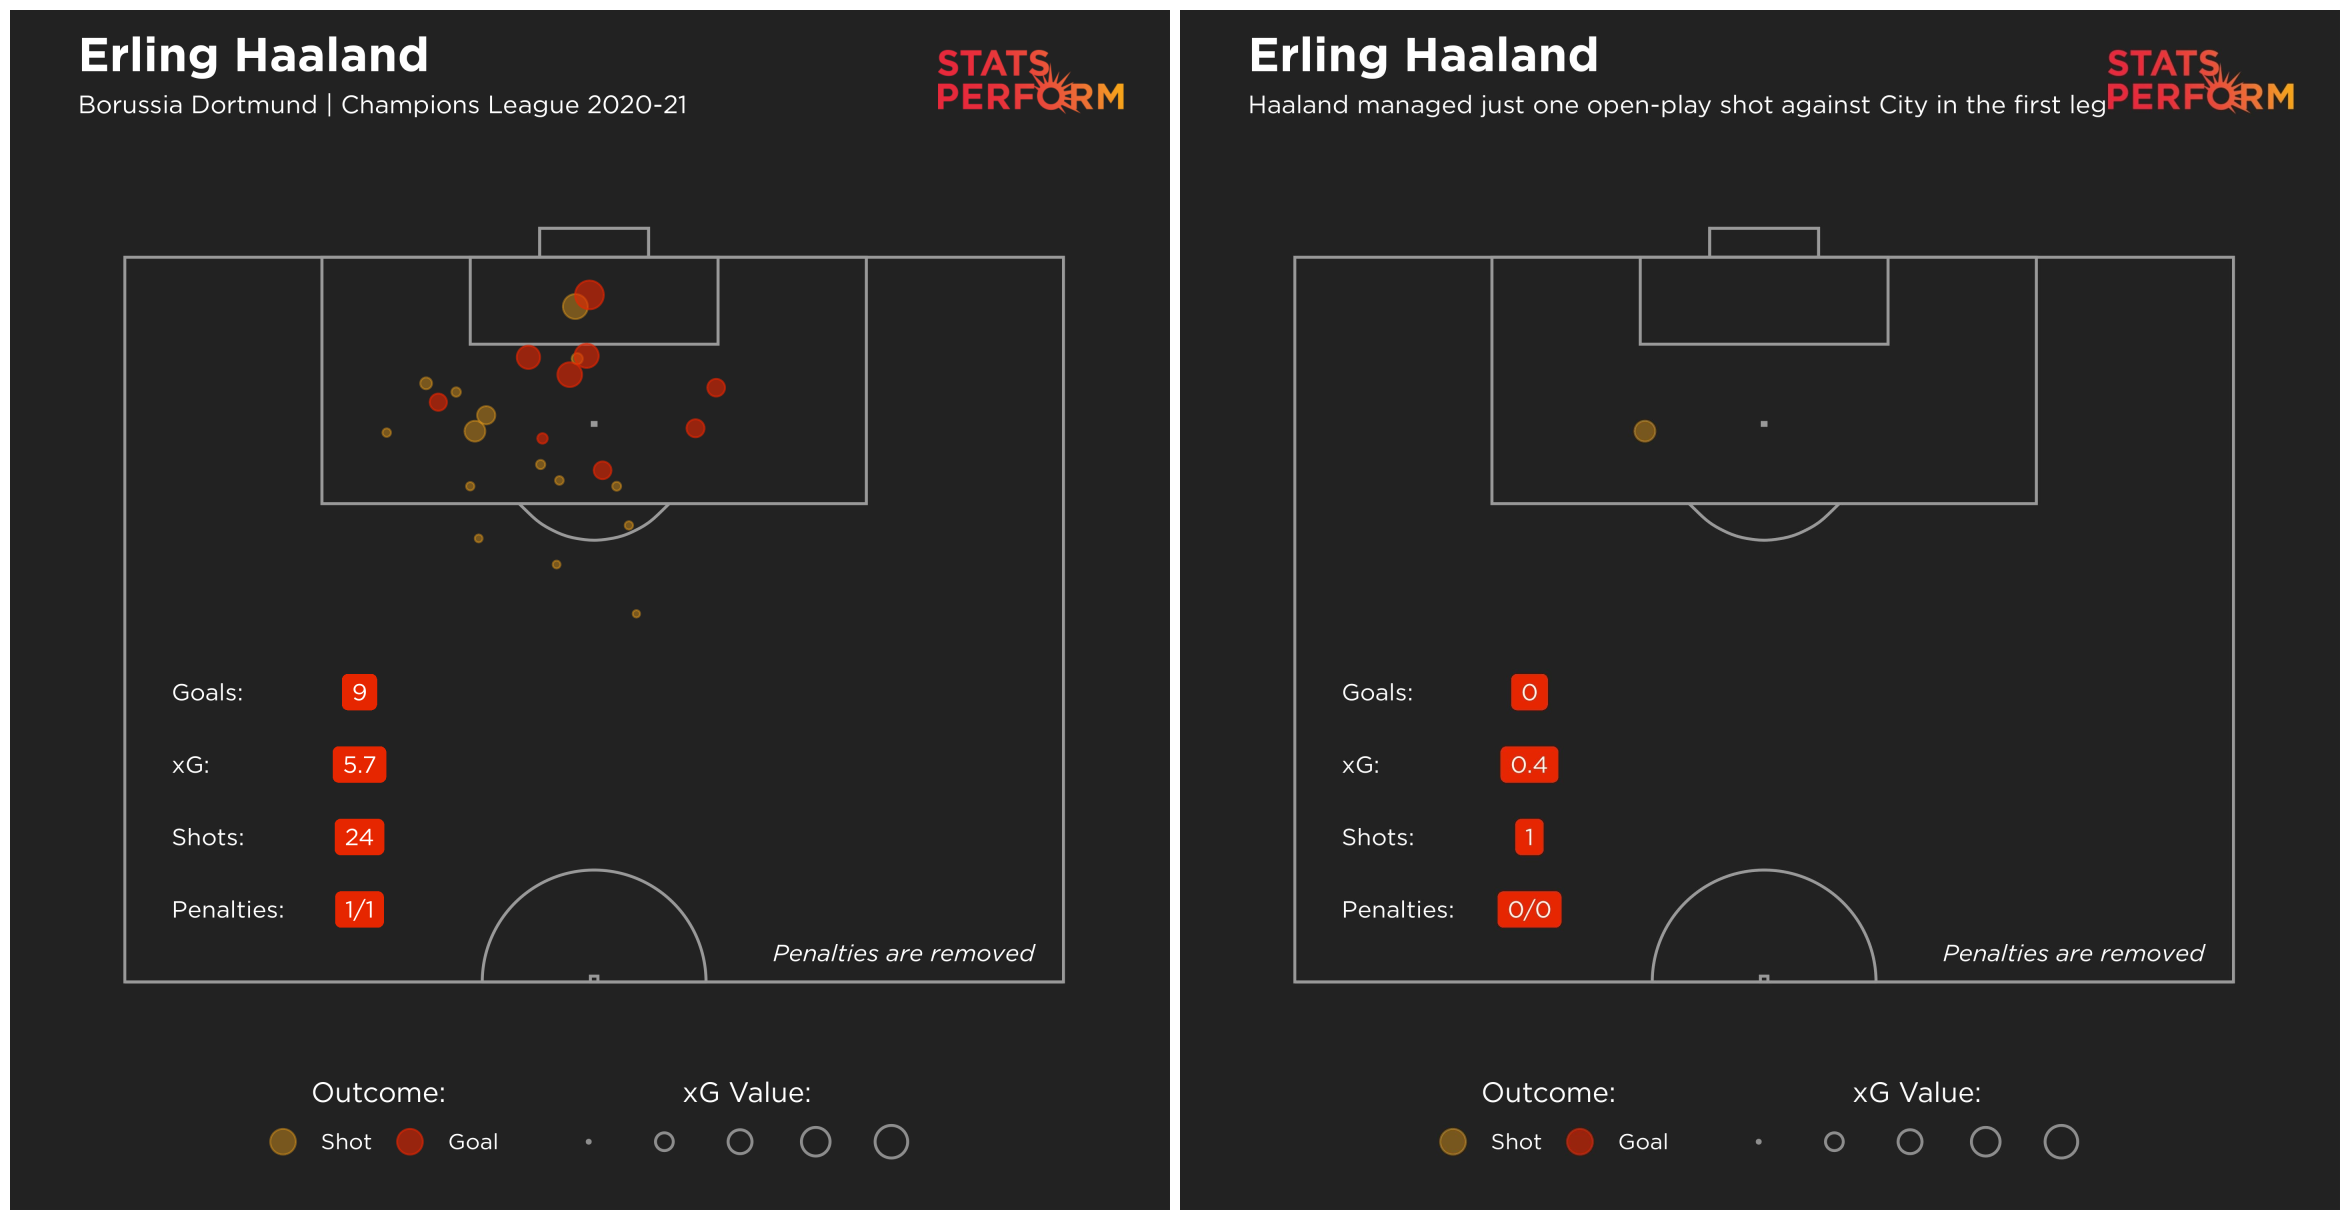 Erling Haaland's miss in the first leg against City was the sort of chance many would expect him to convert